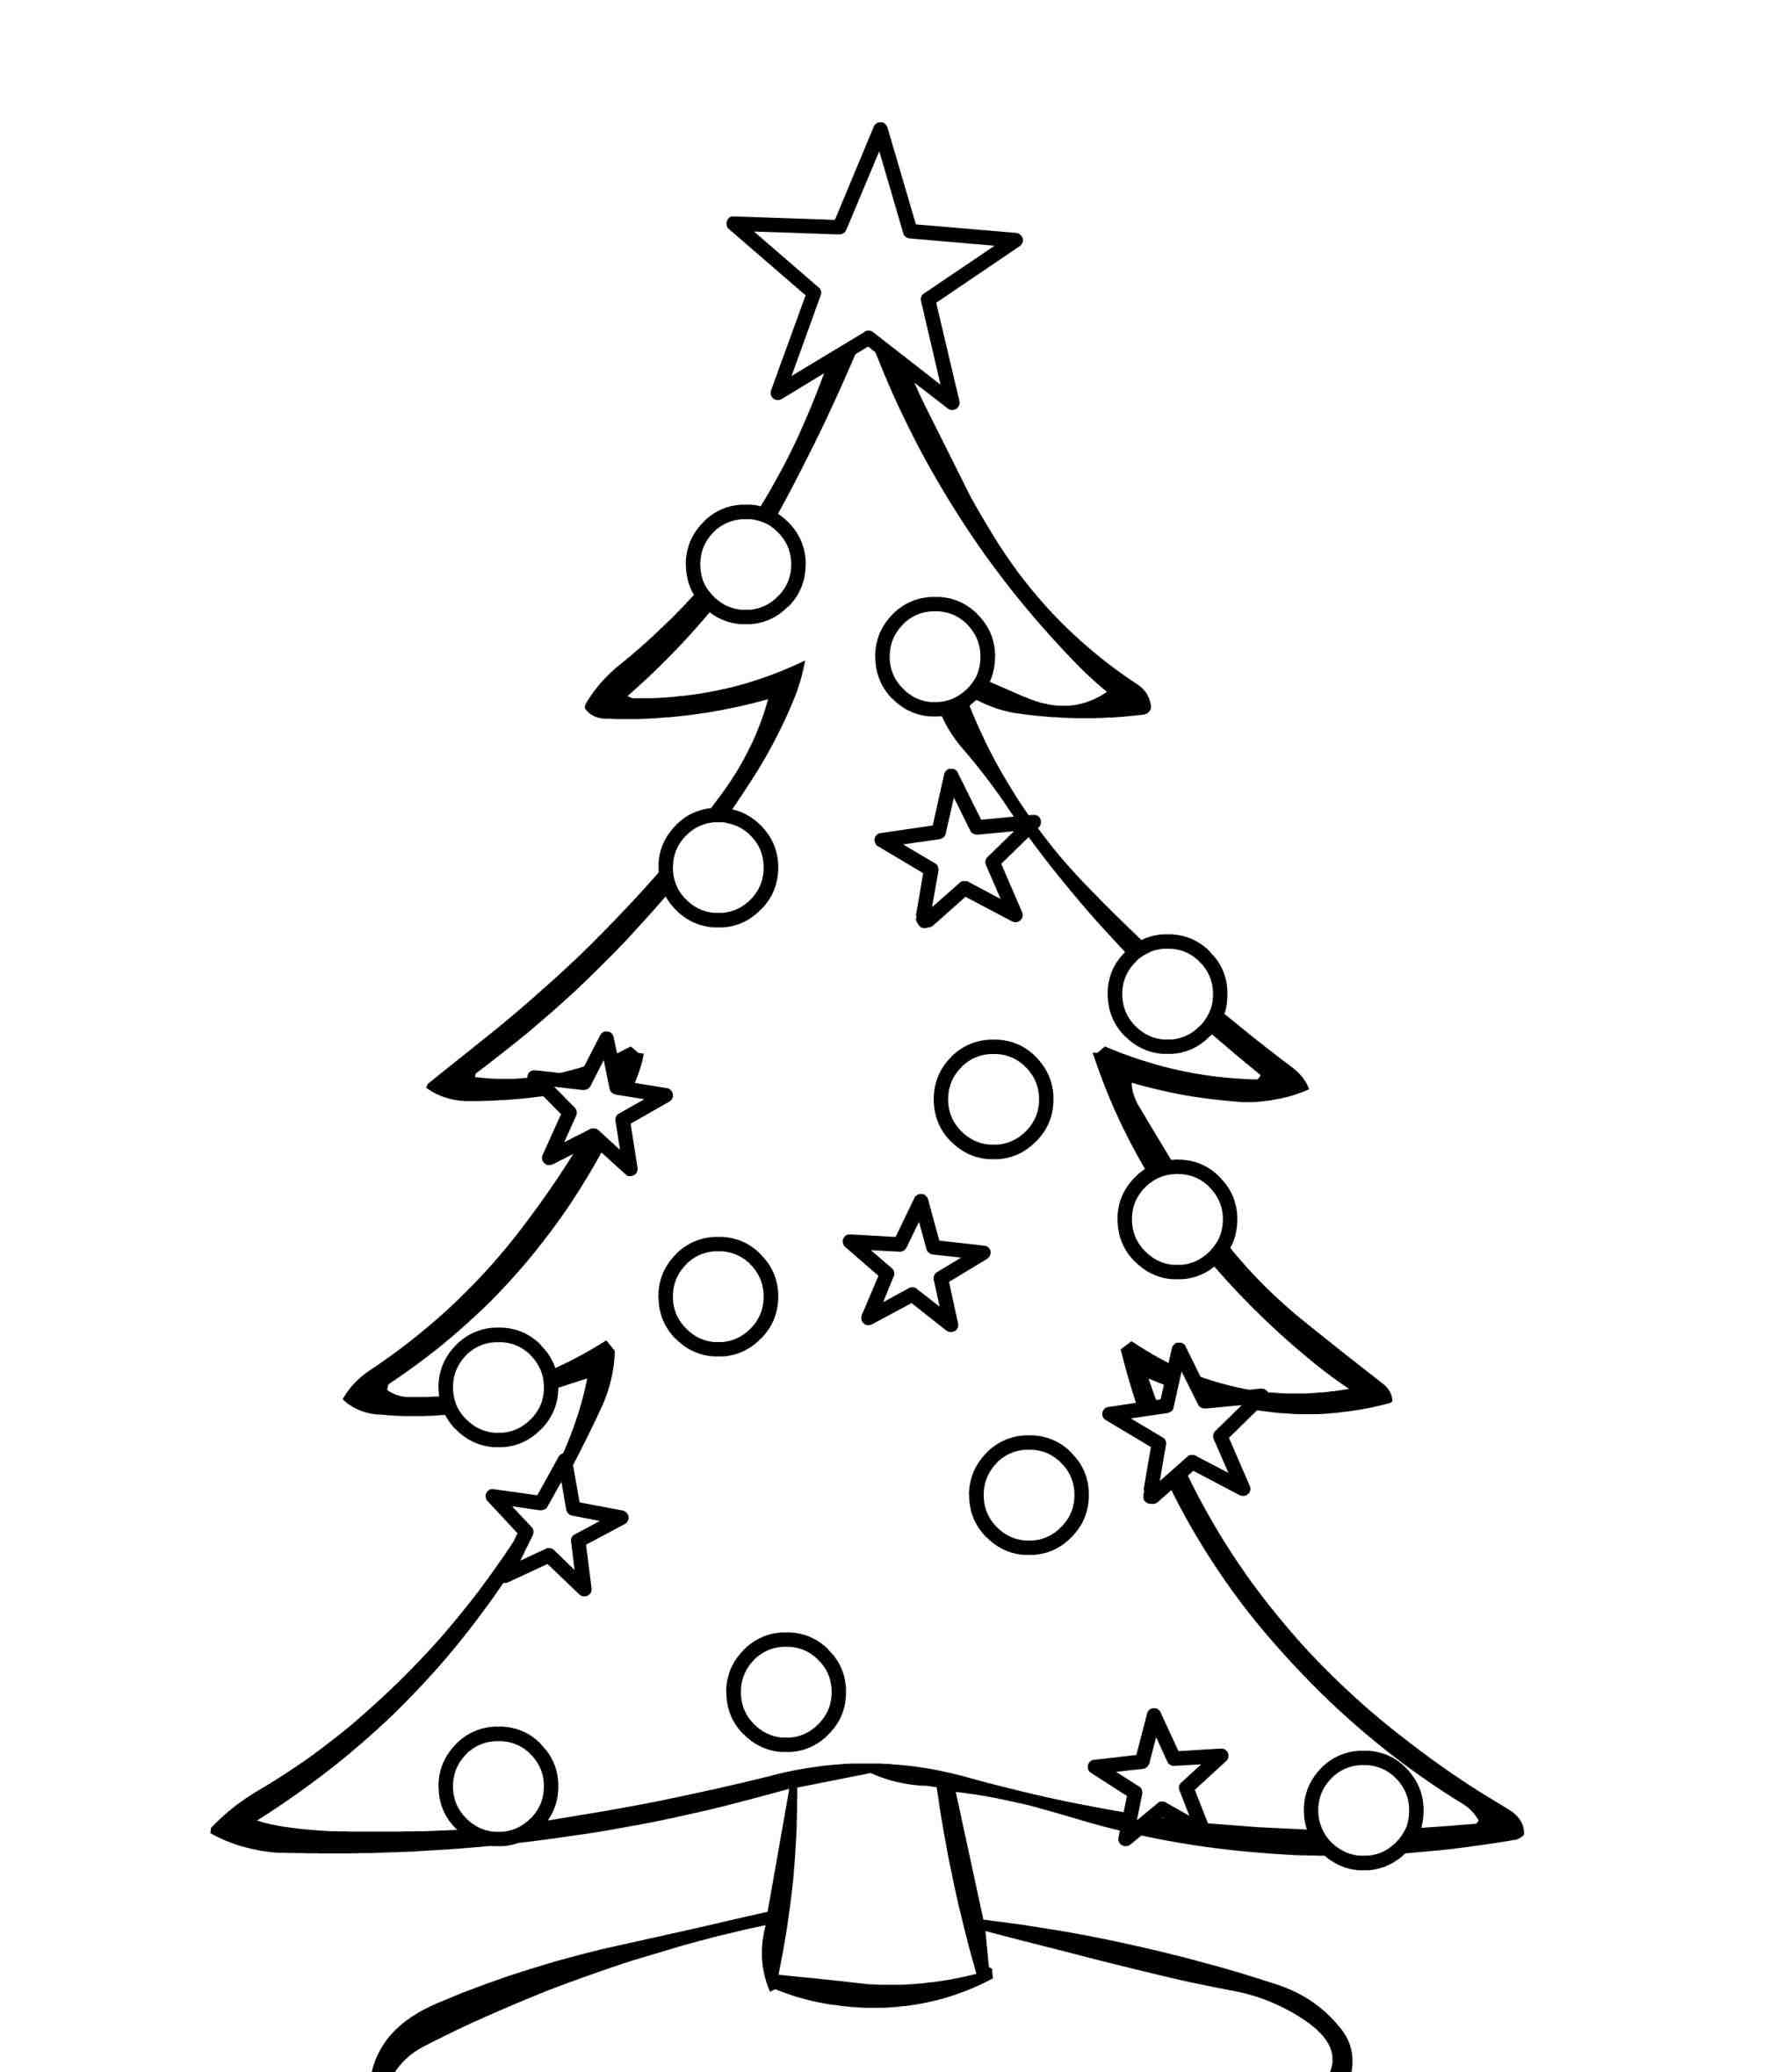 2014x2359 Free Clip Art Tree Christmas Trees Drawings For Kids Drawing S